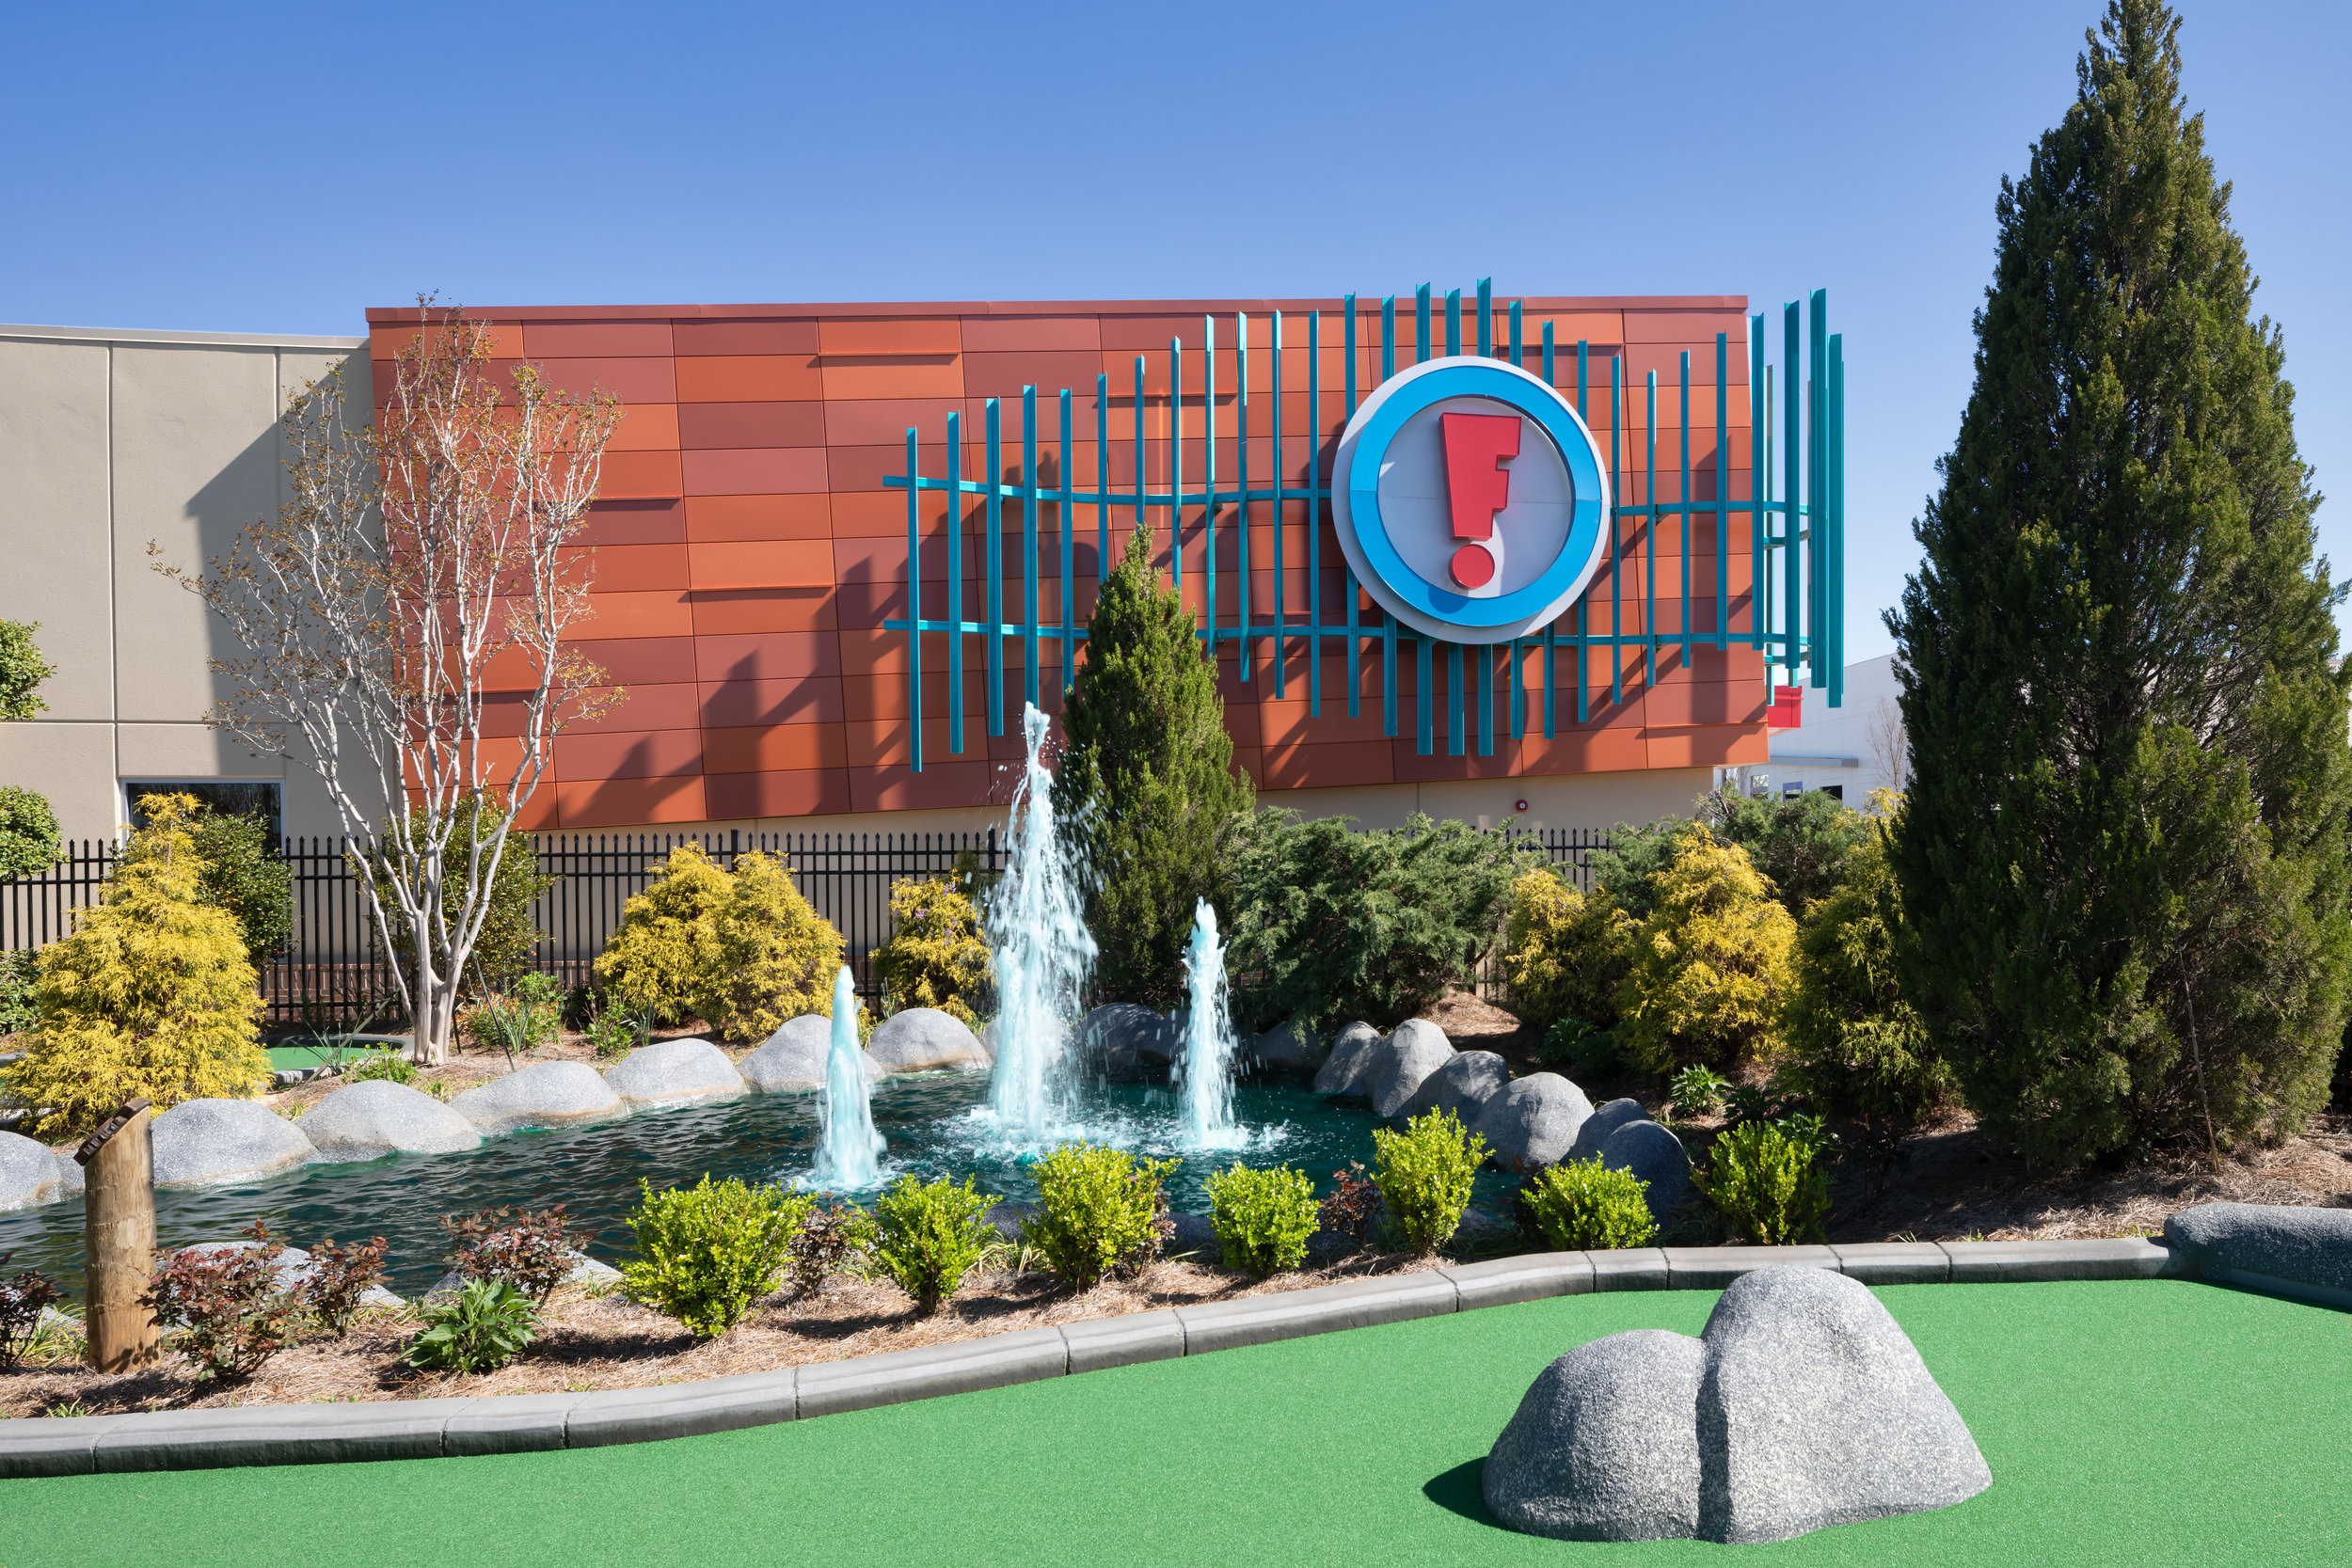 ADW-Entertainment-Frankie's-Fun-Park-Huntersville-NC-Exterior-Mini Golf 03.jpg